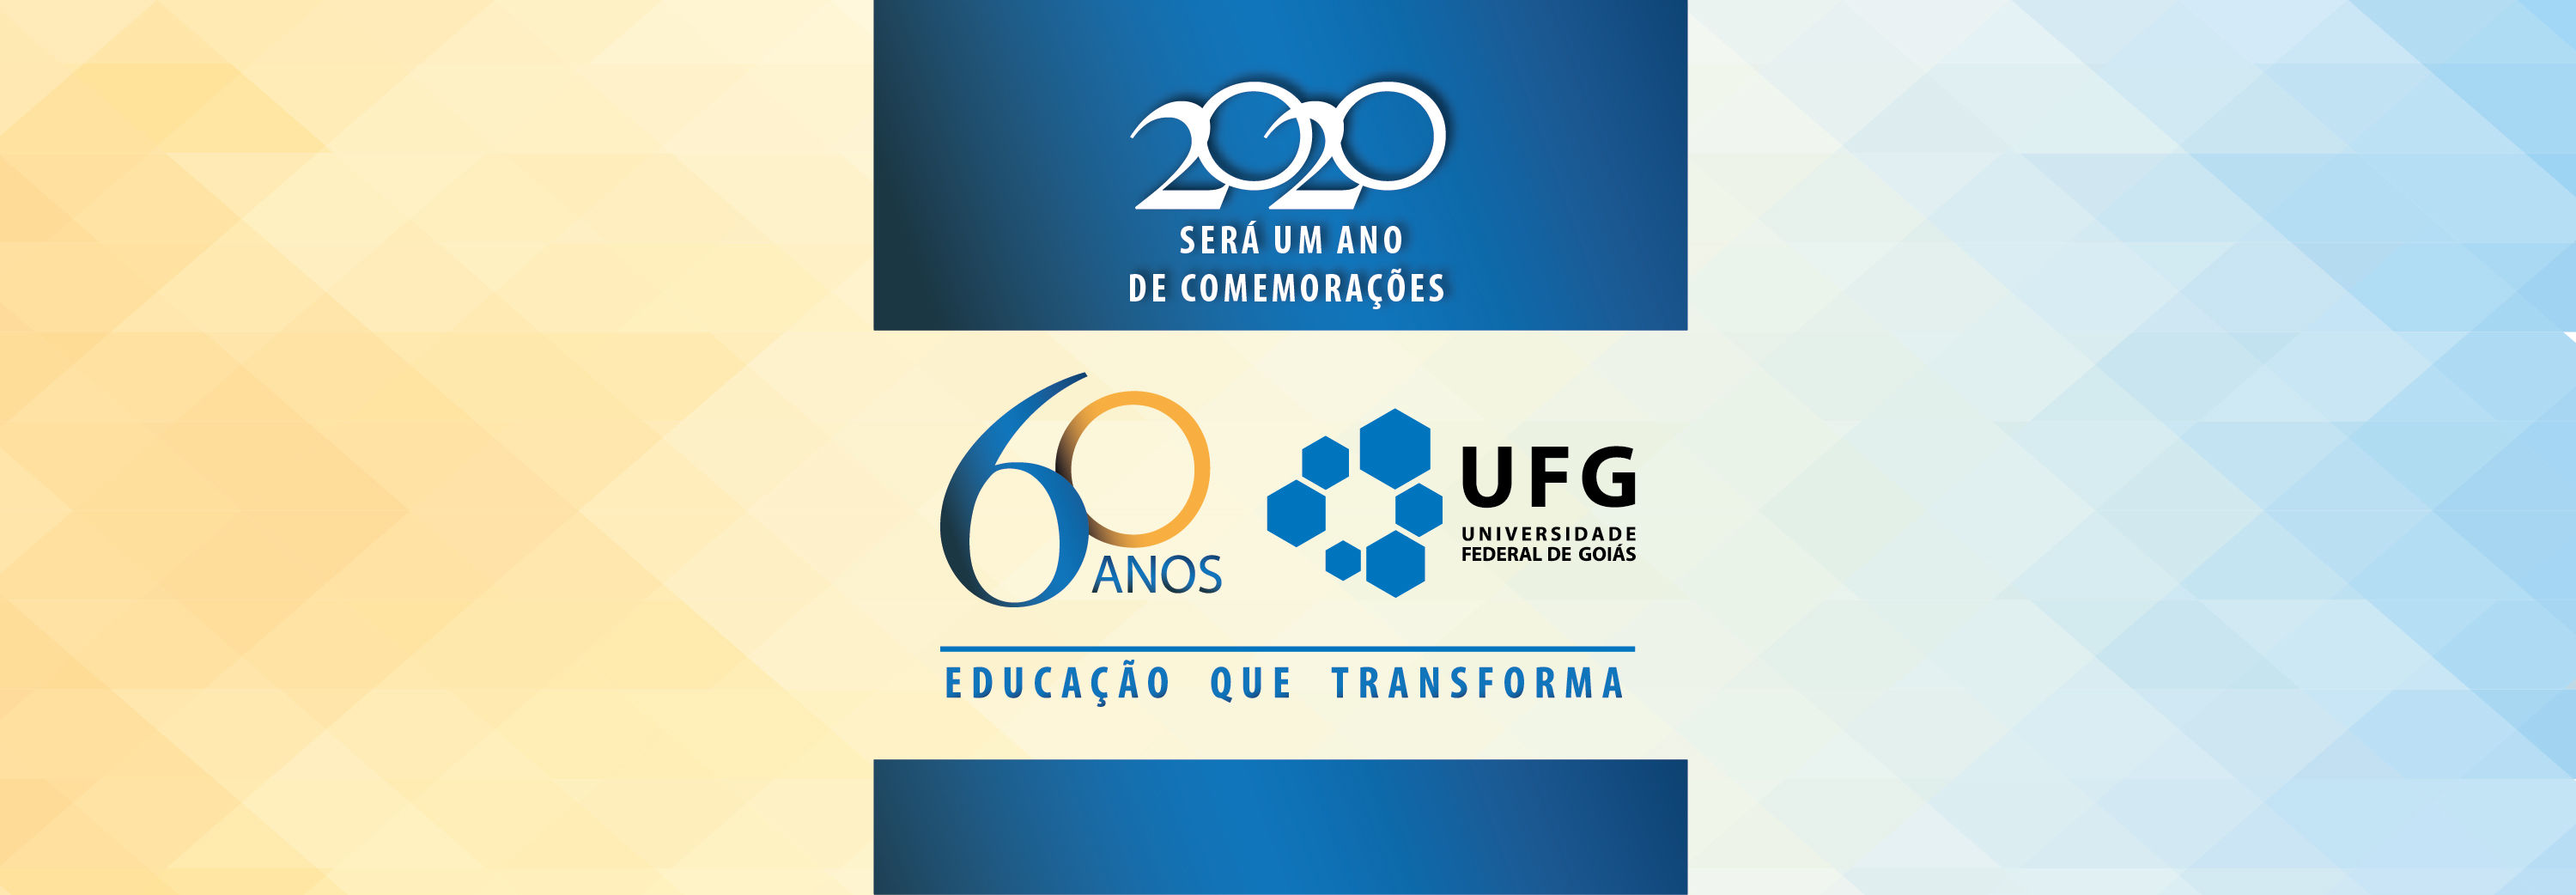 Banners-site-60anos (1) (1).jpg